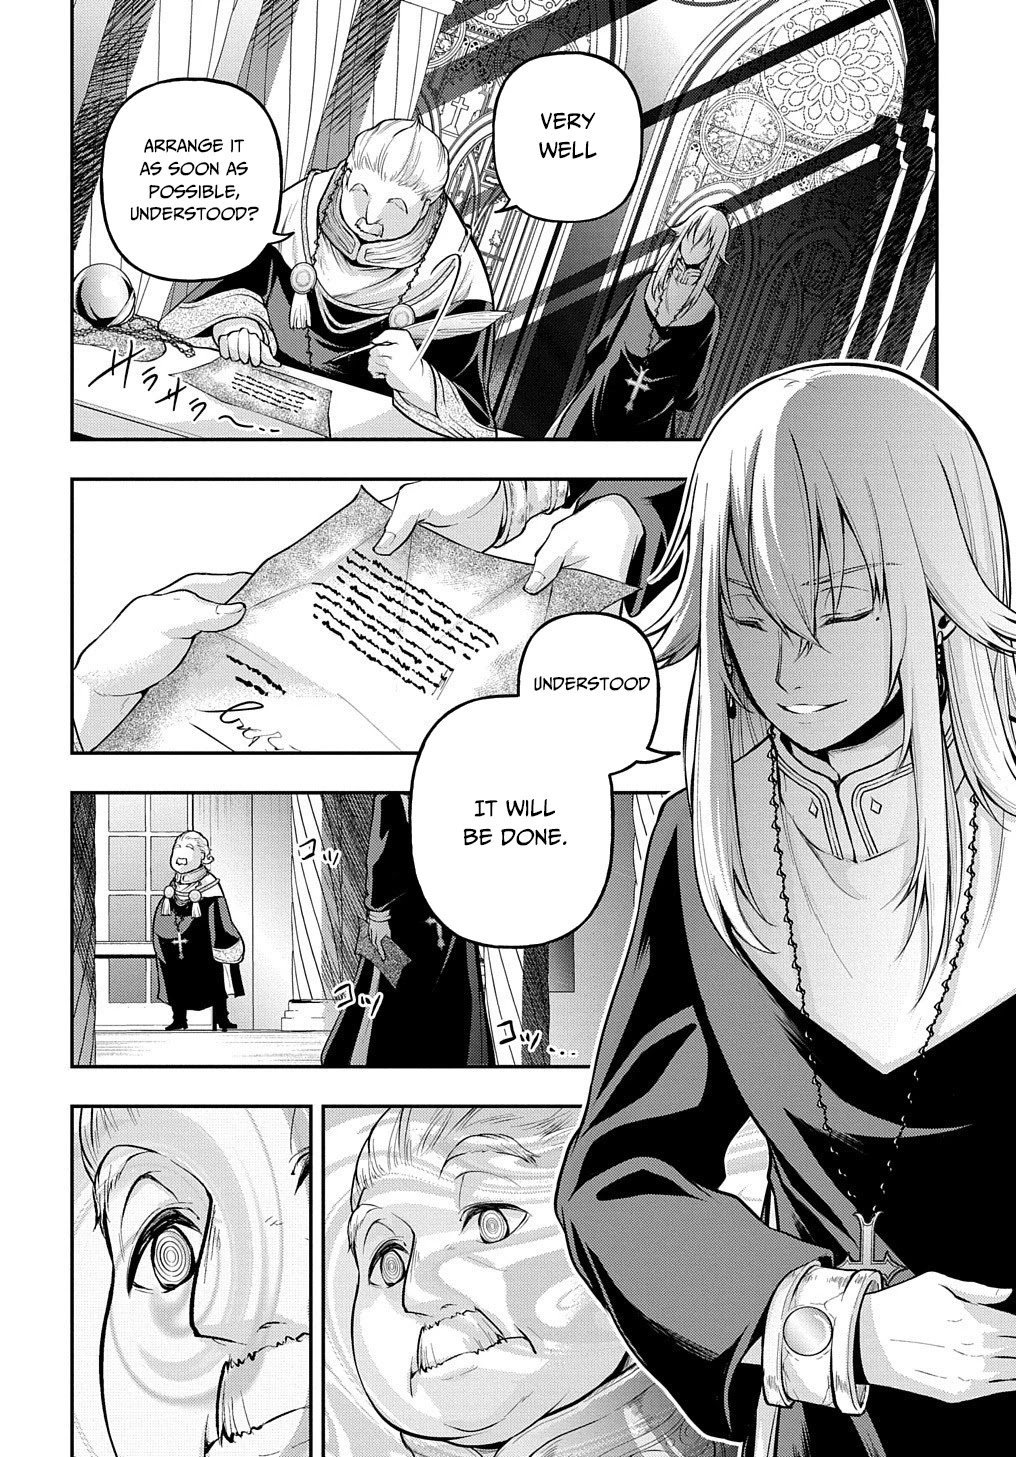 Manga It's Sudden, but I came to Another World! But I hope to live Safely - Chapter 16 Page 39